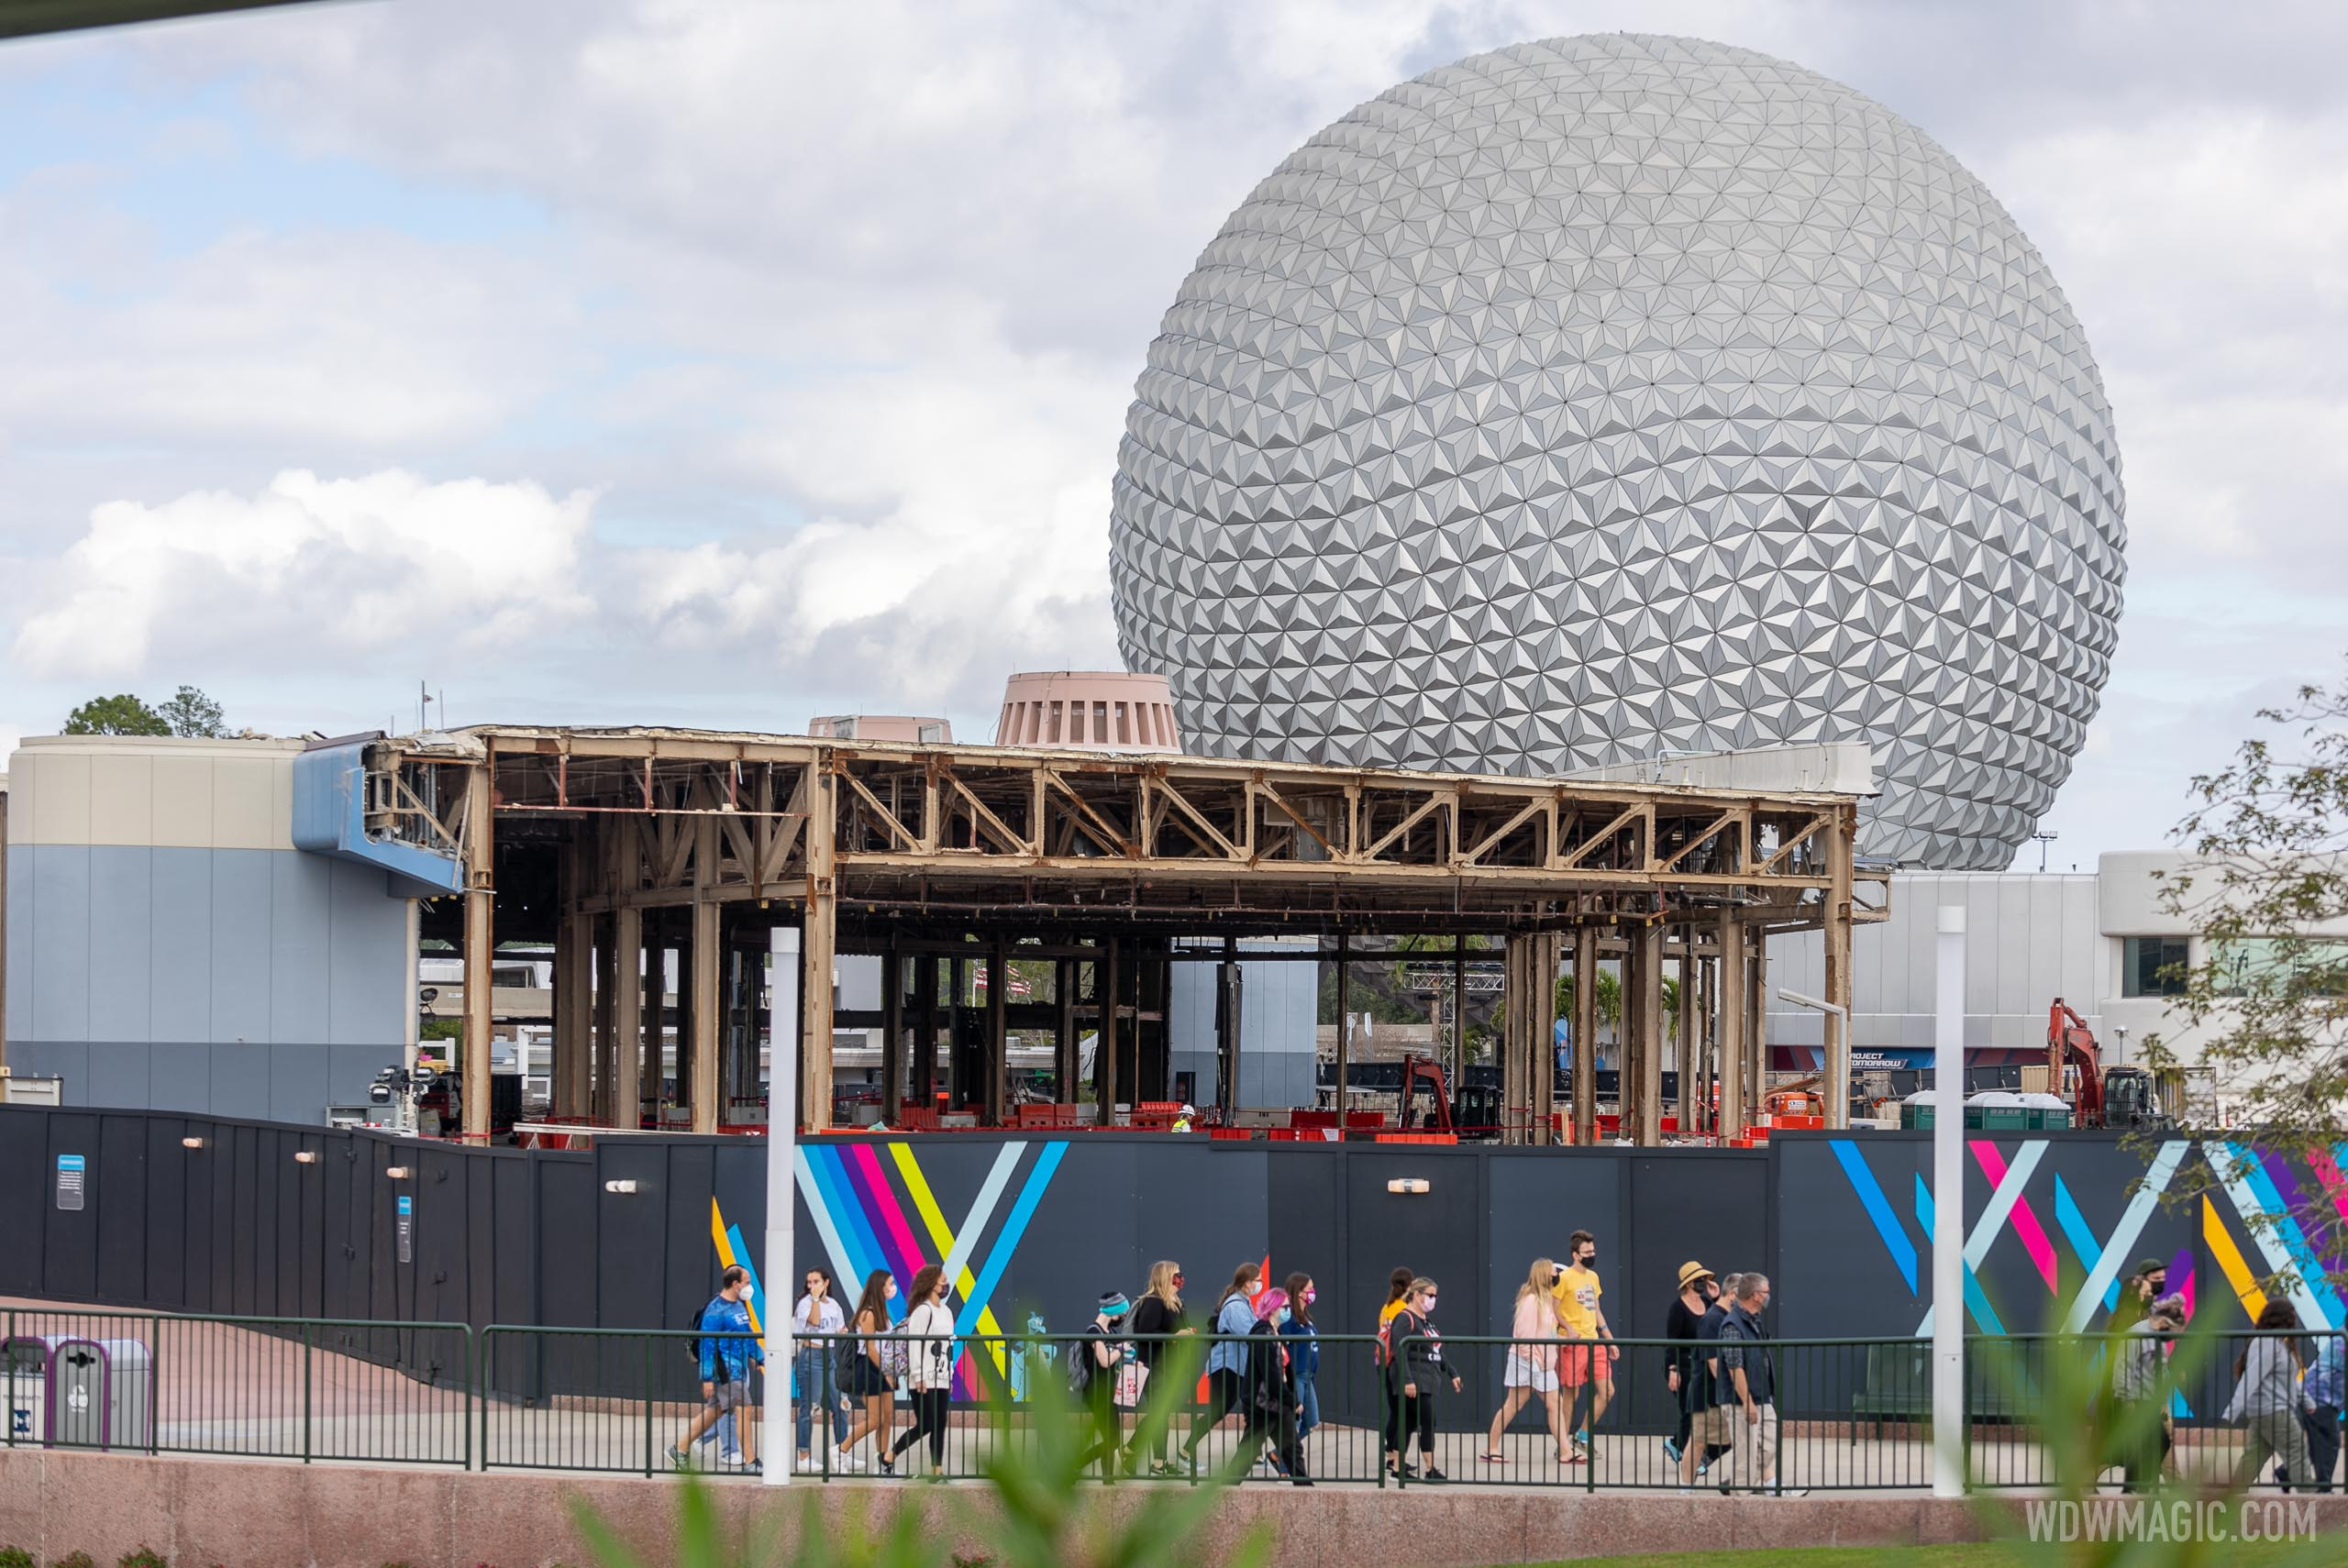 EPCOT Central Spine demolition and construction - January 8 2021